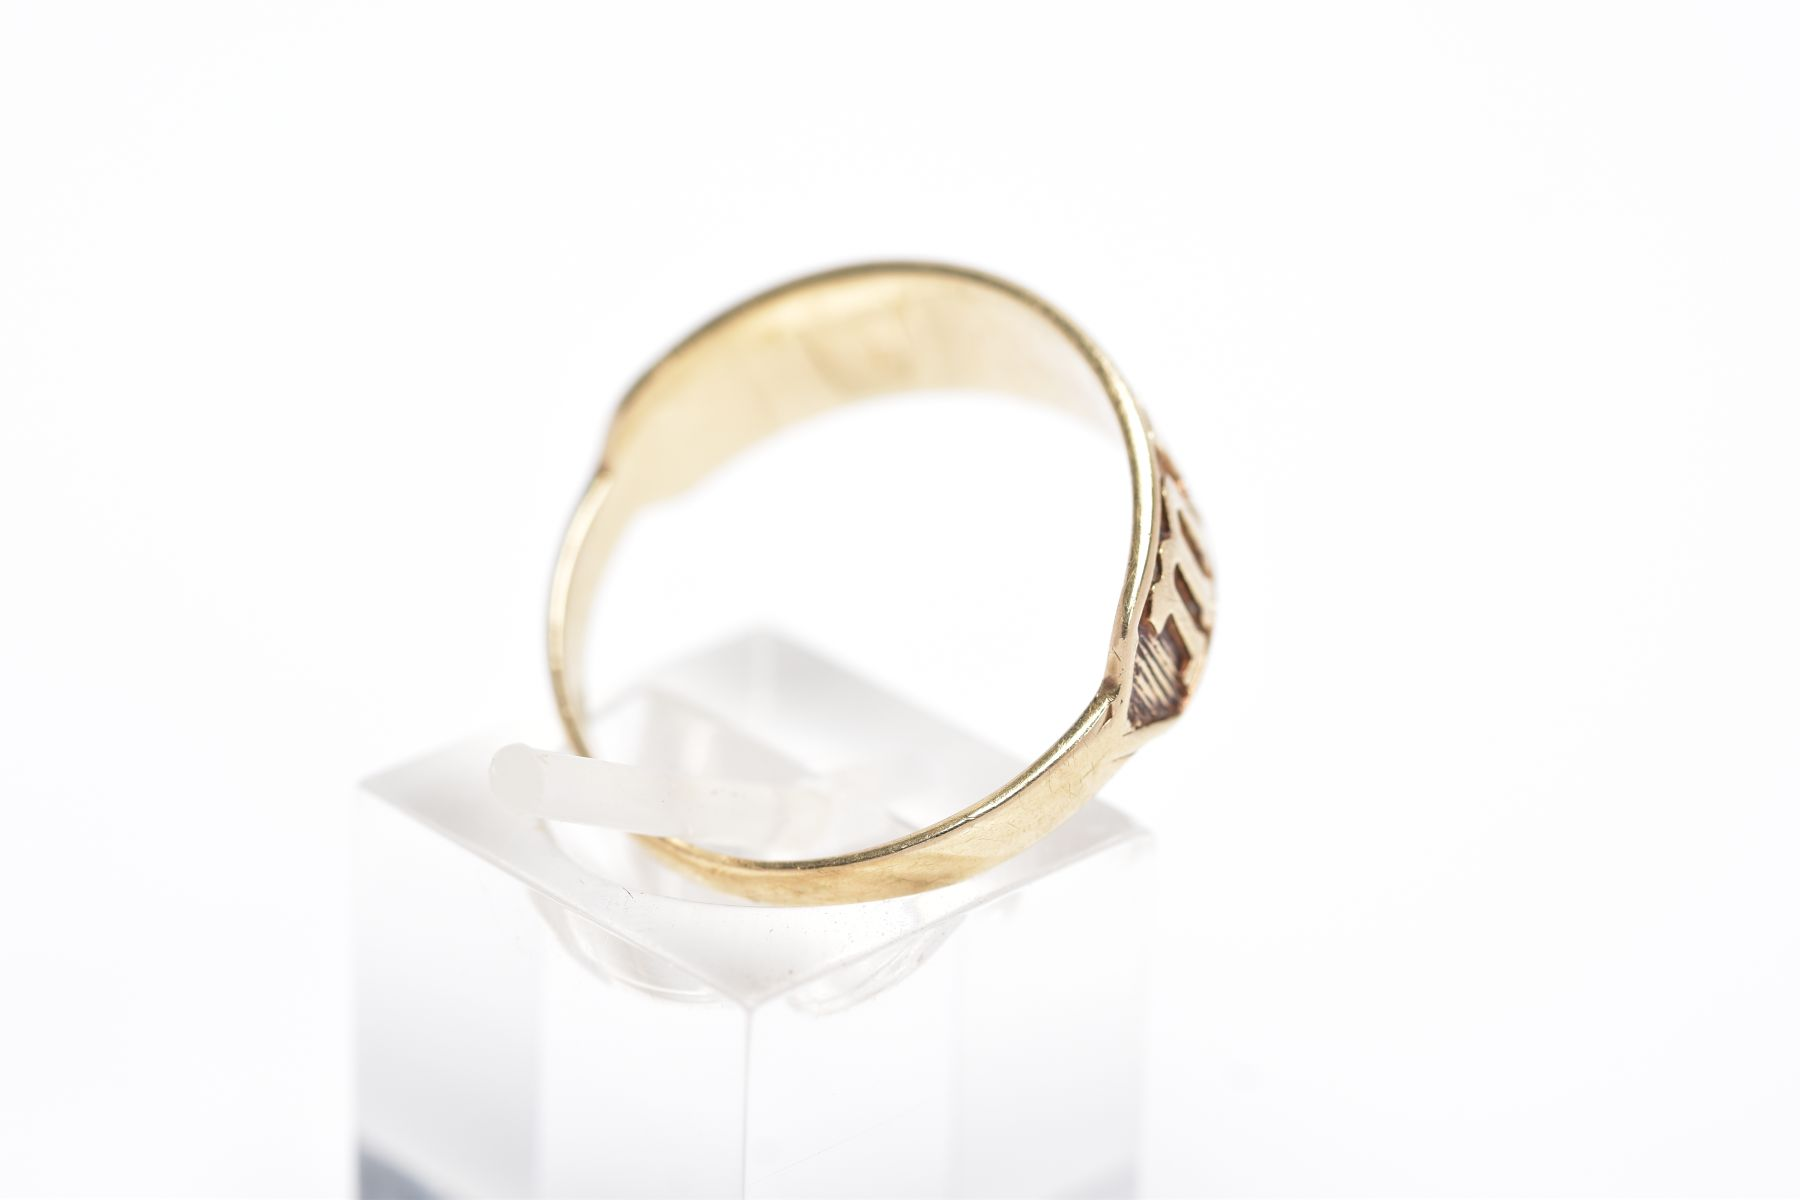 A 9CT GOLD 'MIZPAH' RING, inscribed 'Mizpah' band, with a textured background, hallmarked 9ct gold - Image 3 of 4